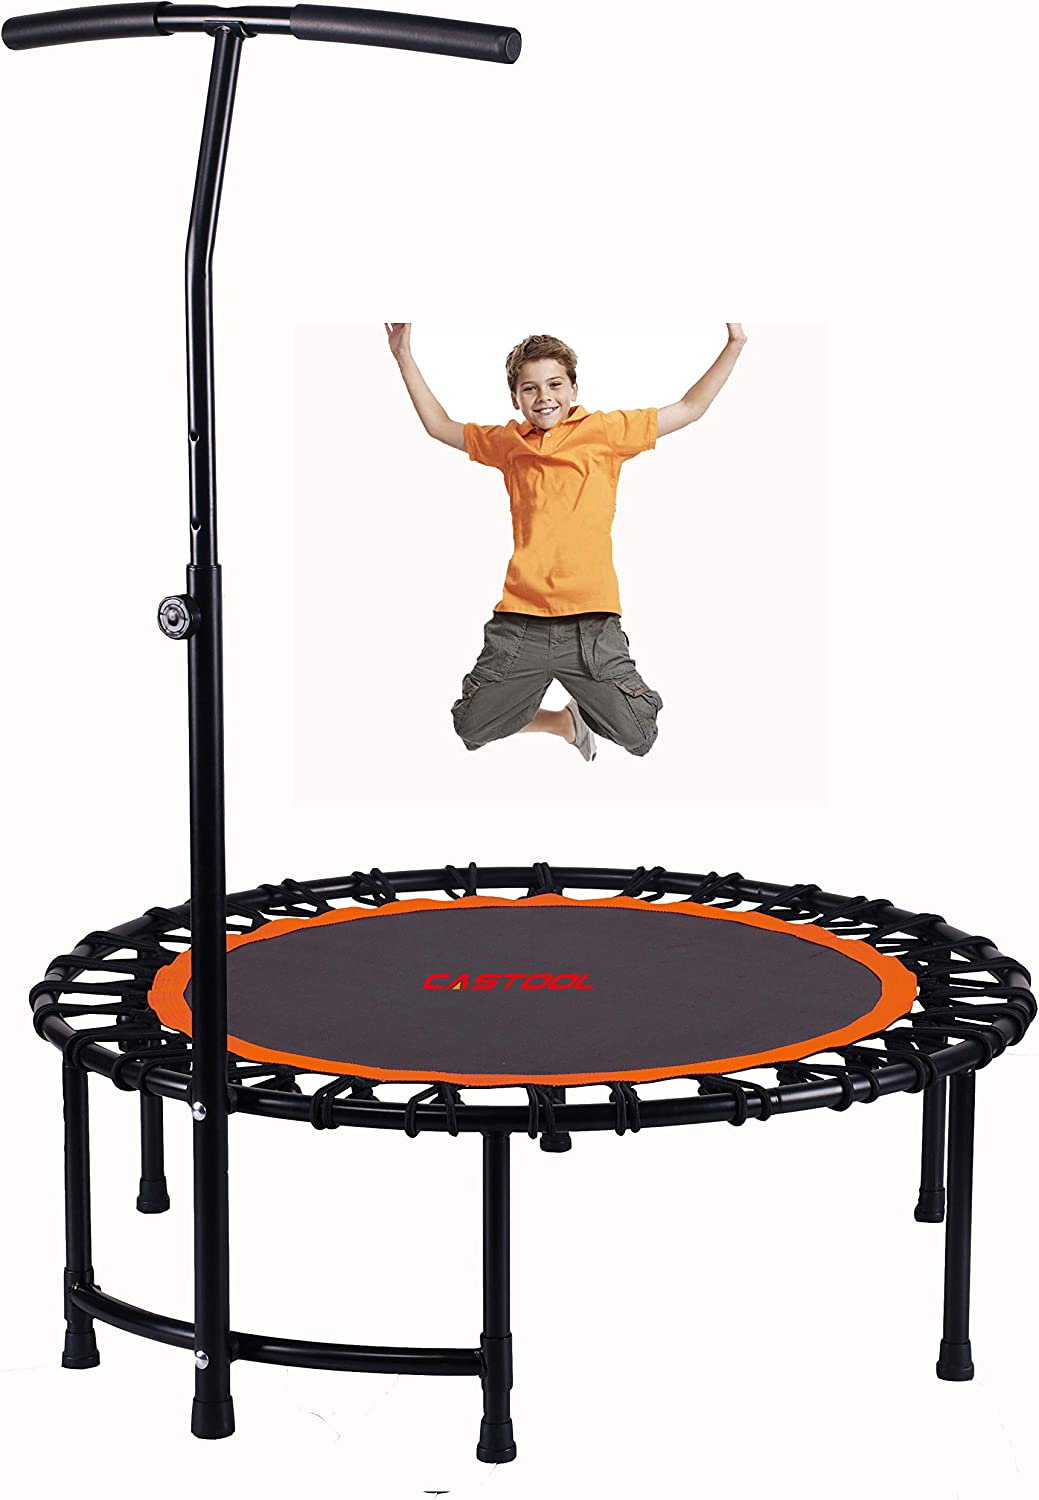 Orange CASTOOL 40Ultra Quiet Fitness Mini Circular Trampoline with Adjustable Handle,Safe Elastic Band Indoor Fitness//Home Workout Cardio Training for Adults and kids